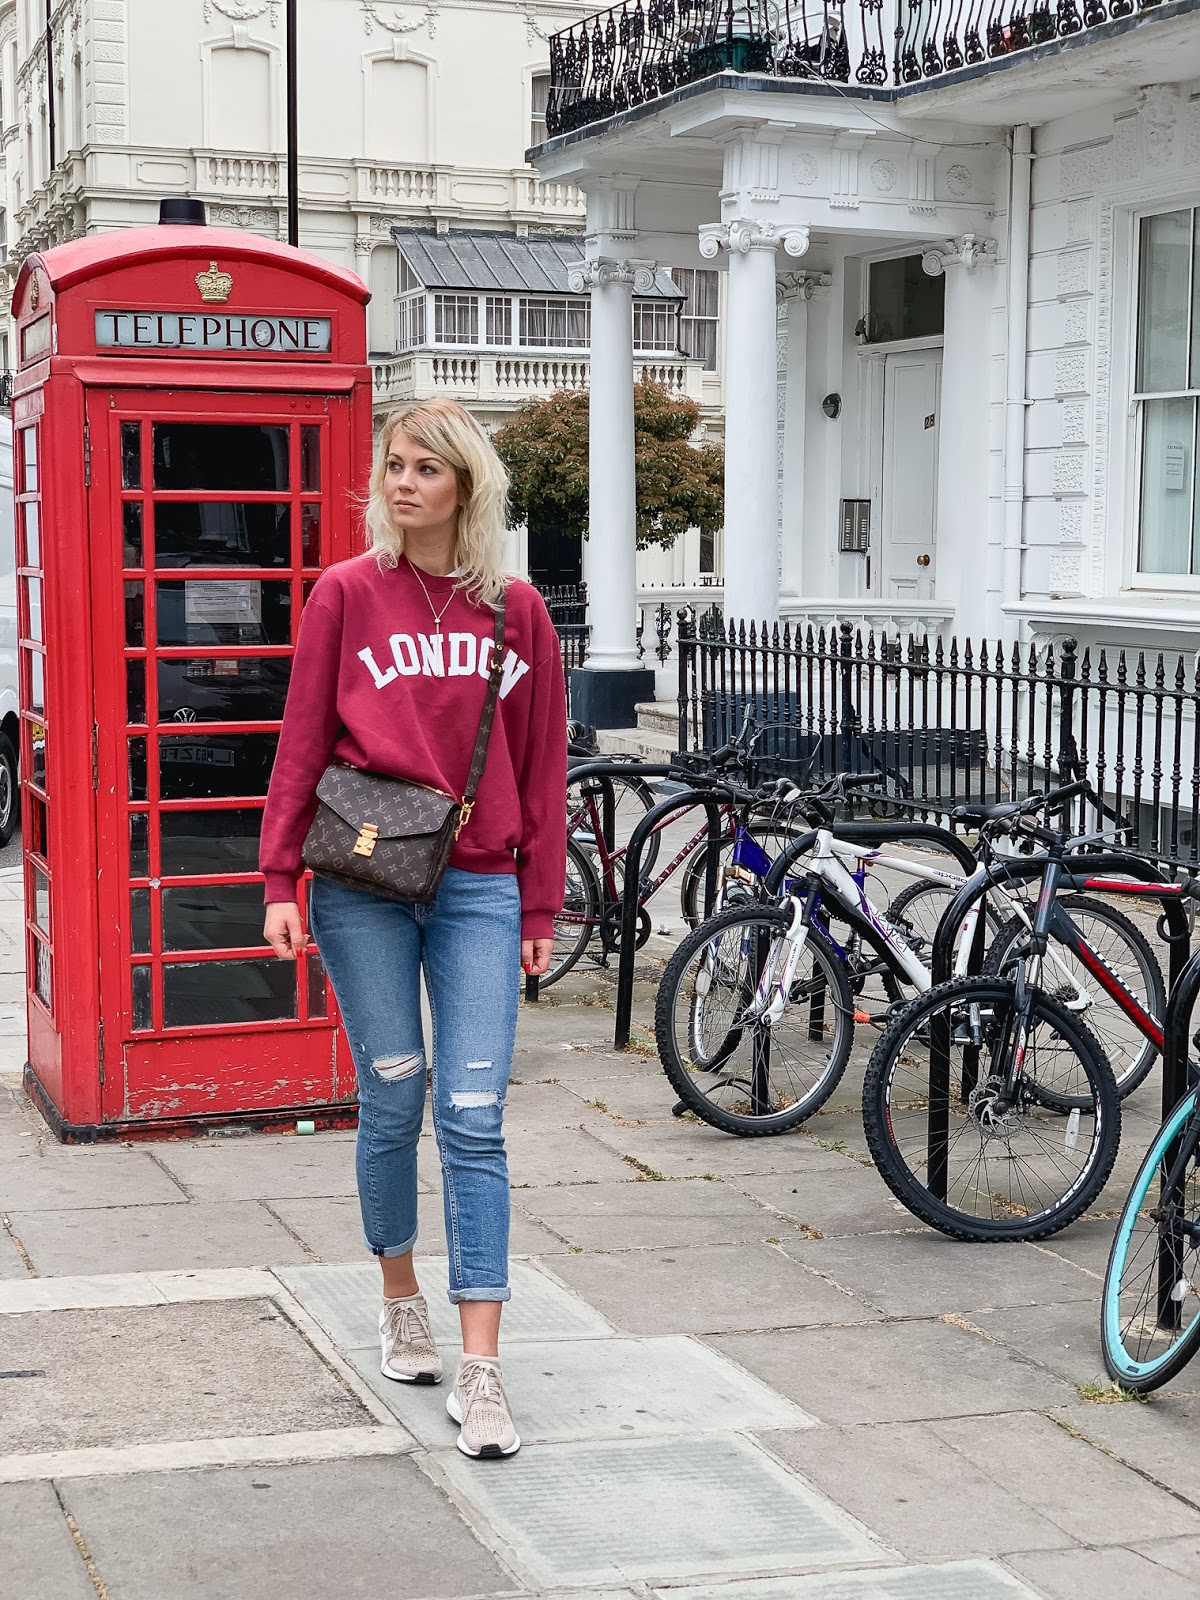 Instagram Locations in London